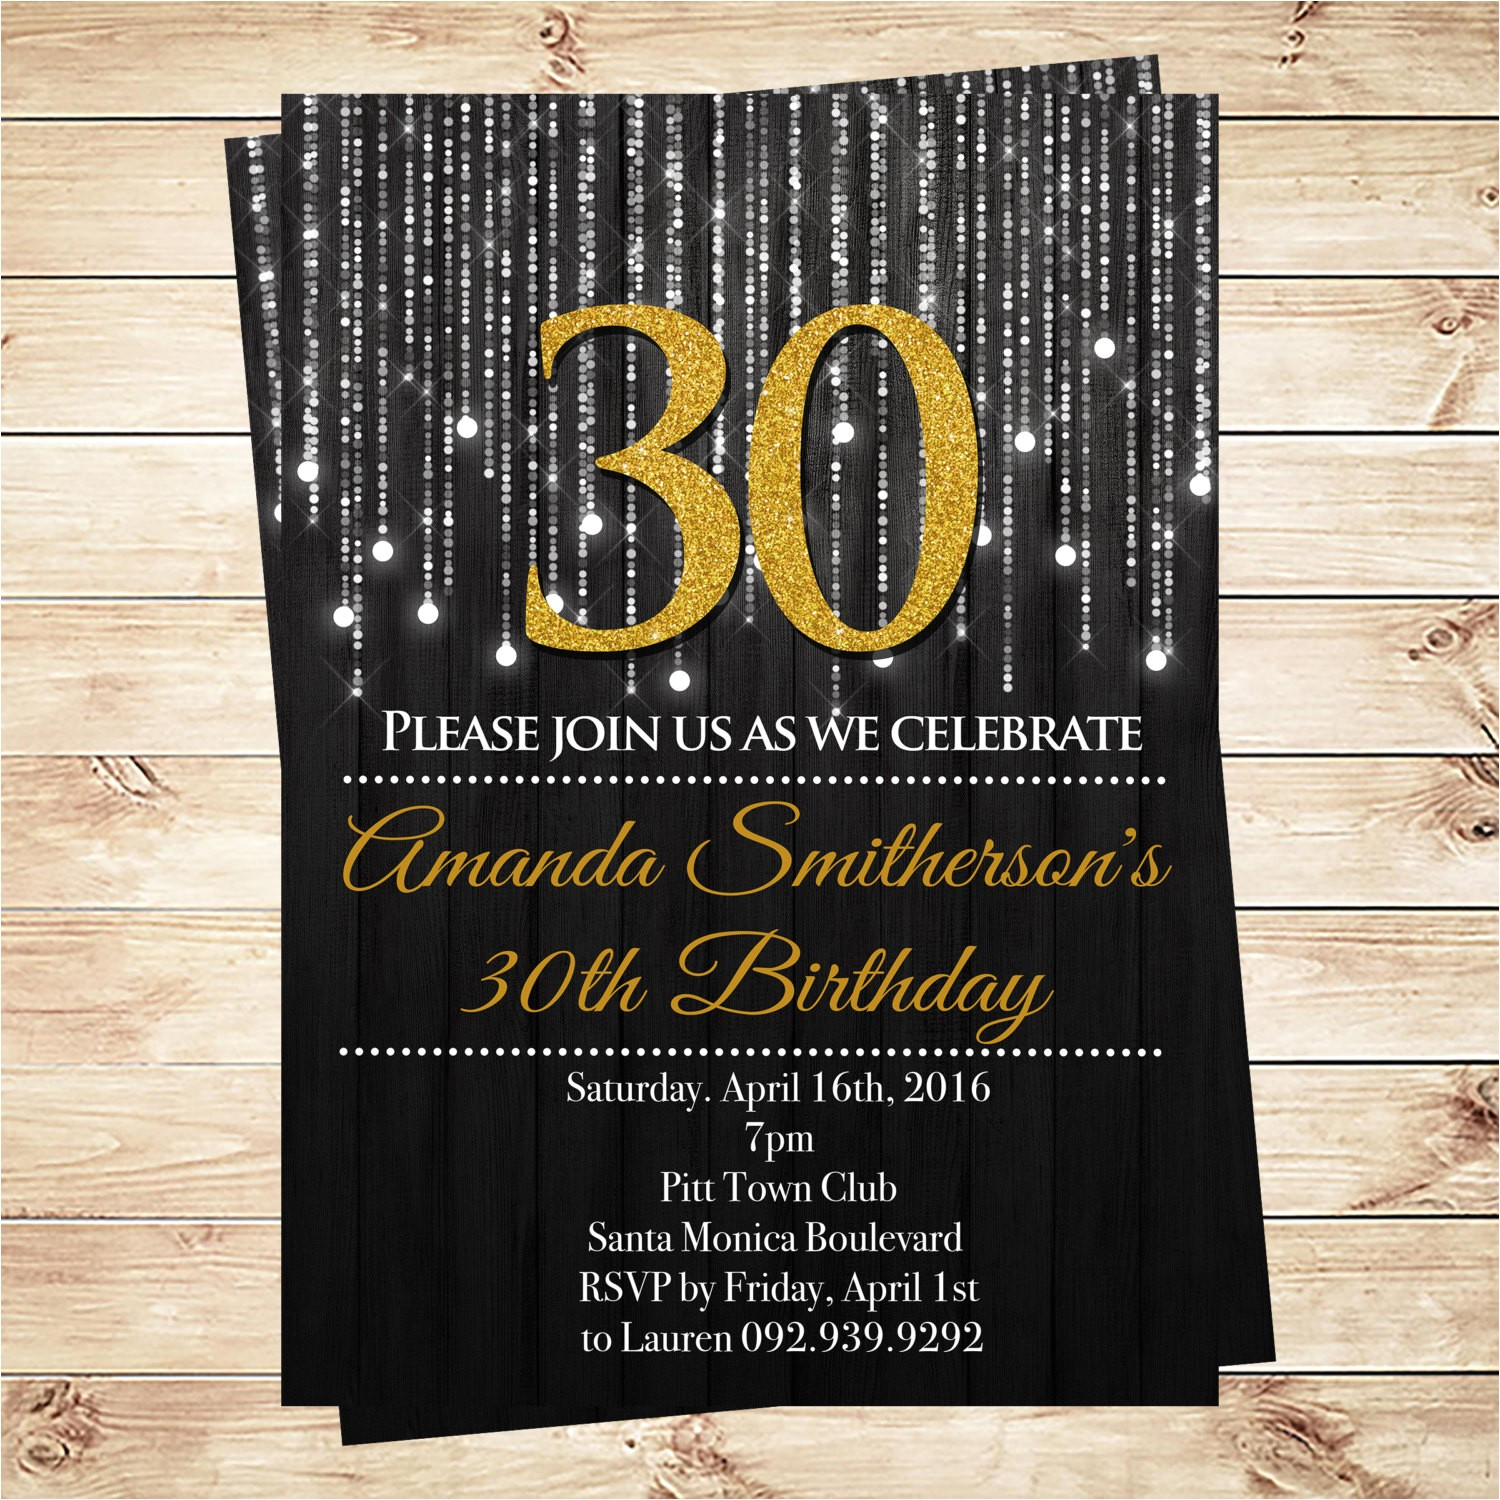 black and gold birthday invitations looking design unique ideas for black and gold birthday invitations free templates silverlininginvitations